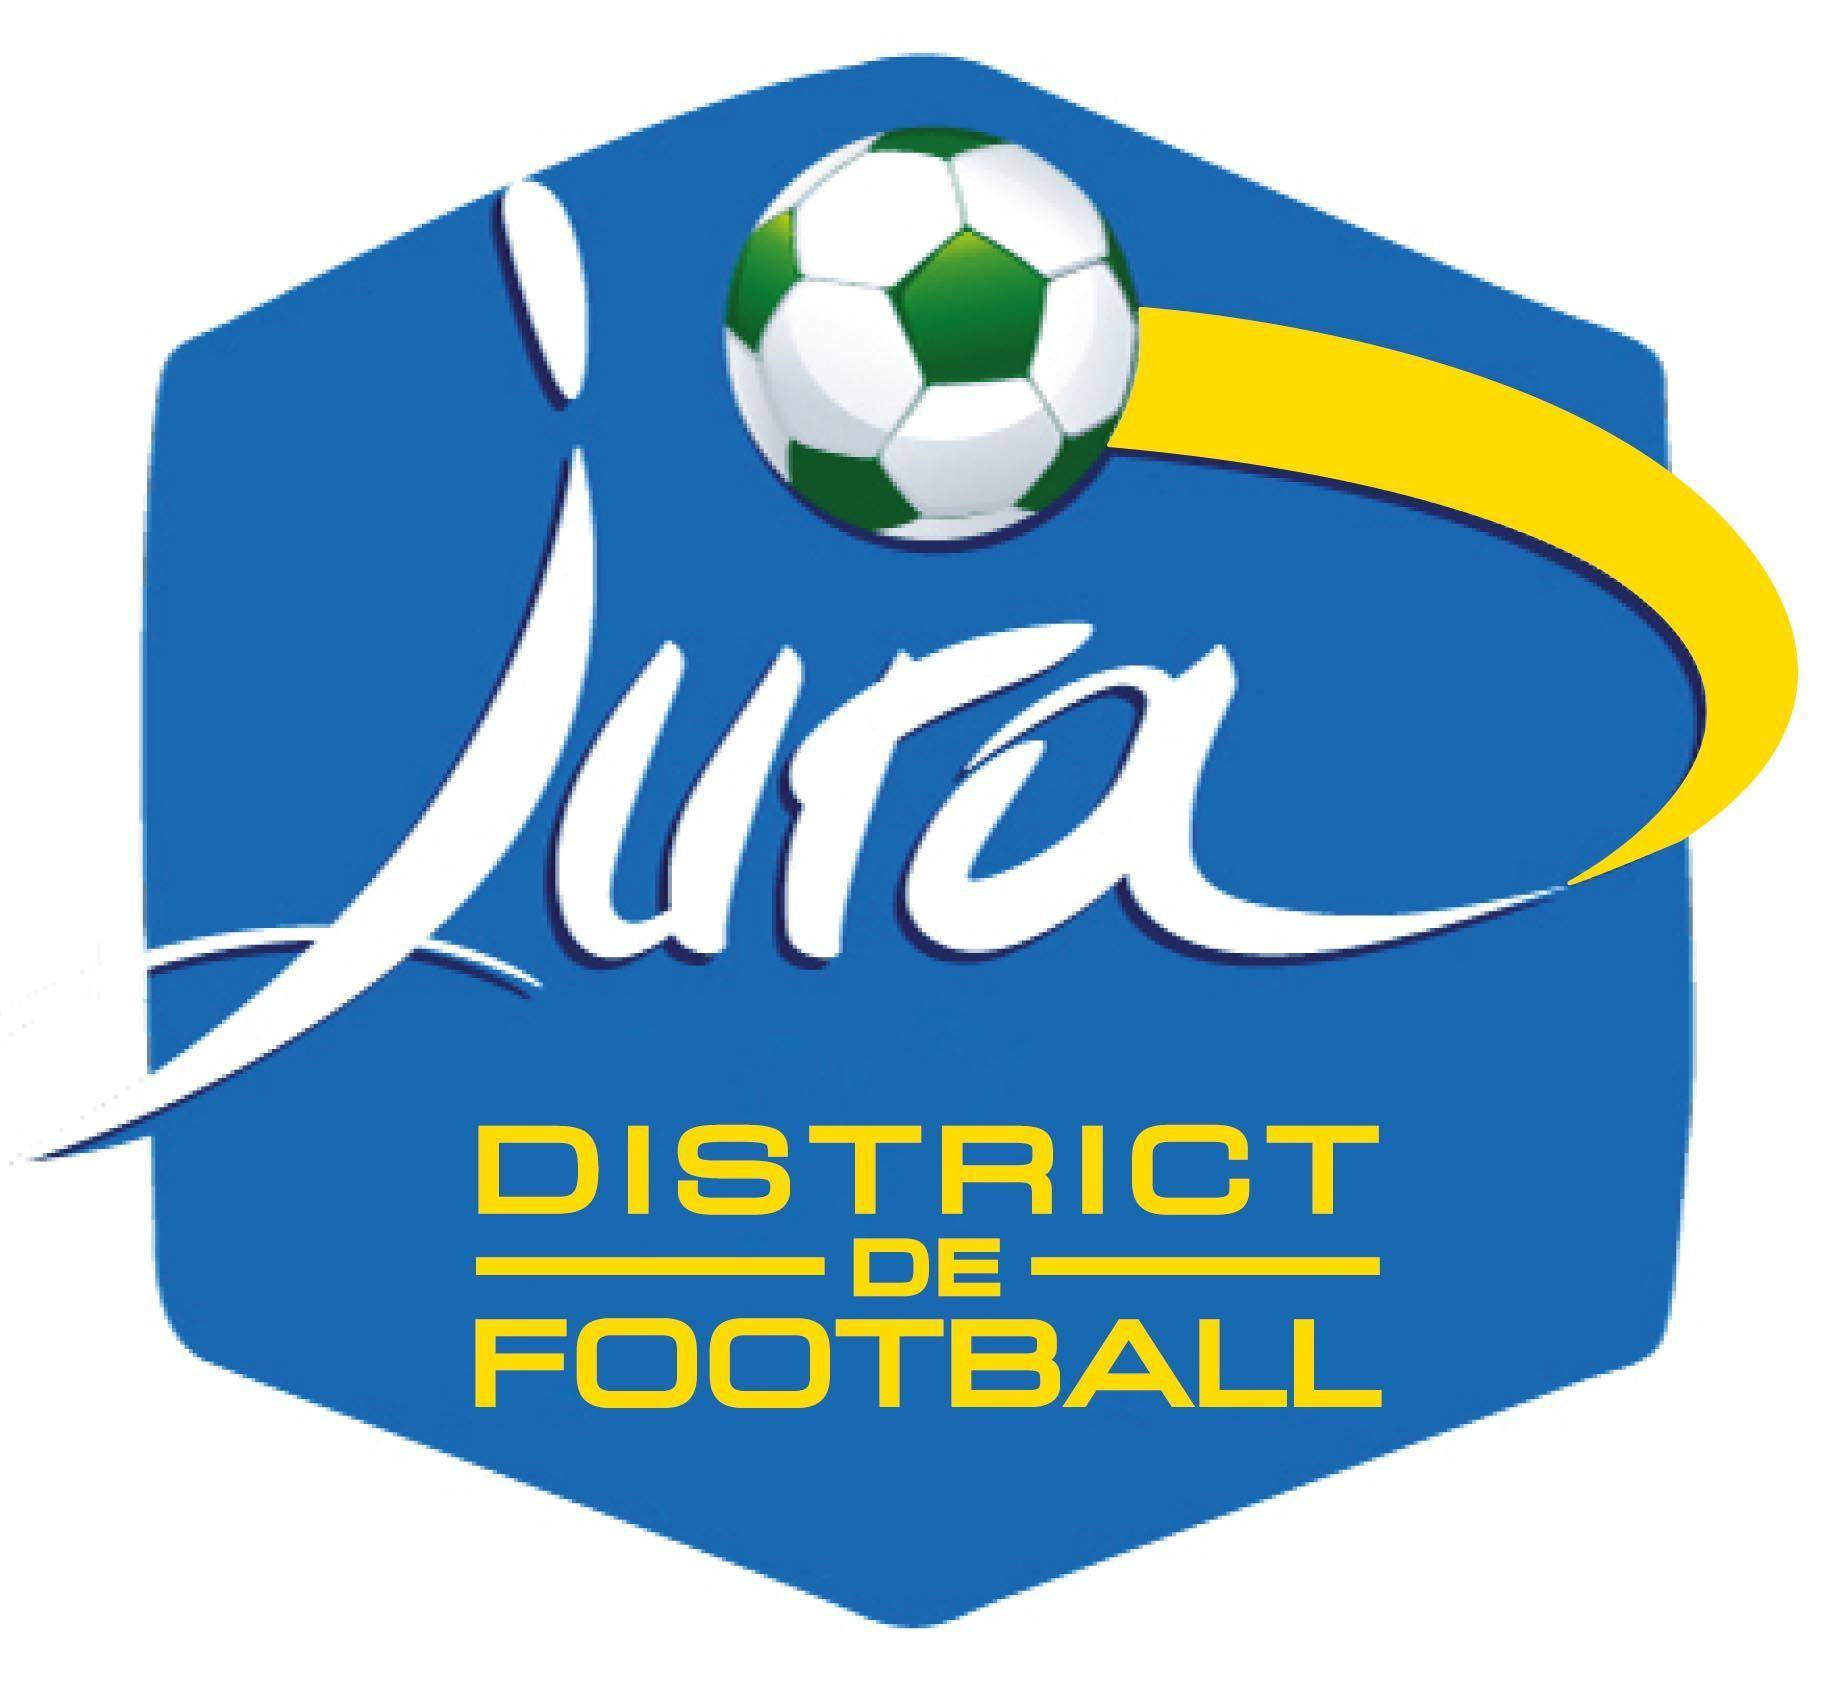 District Football Jura